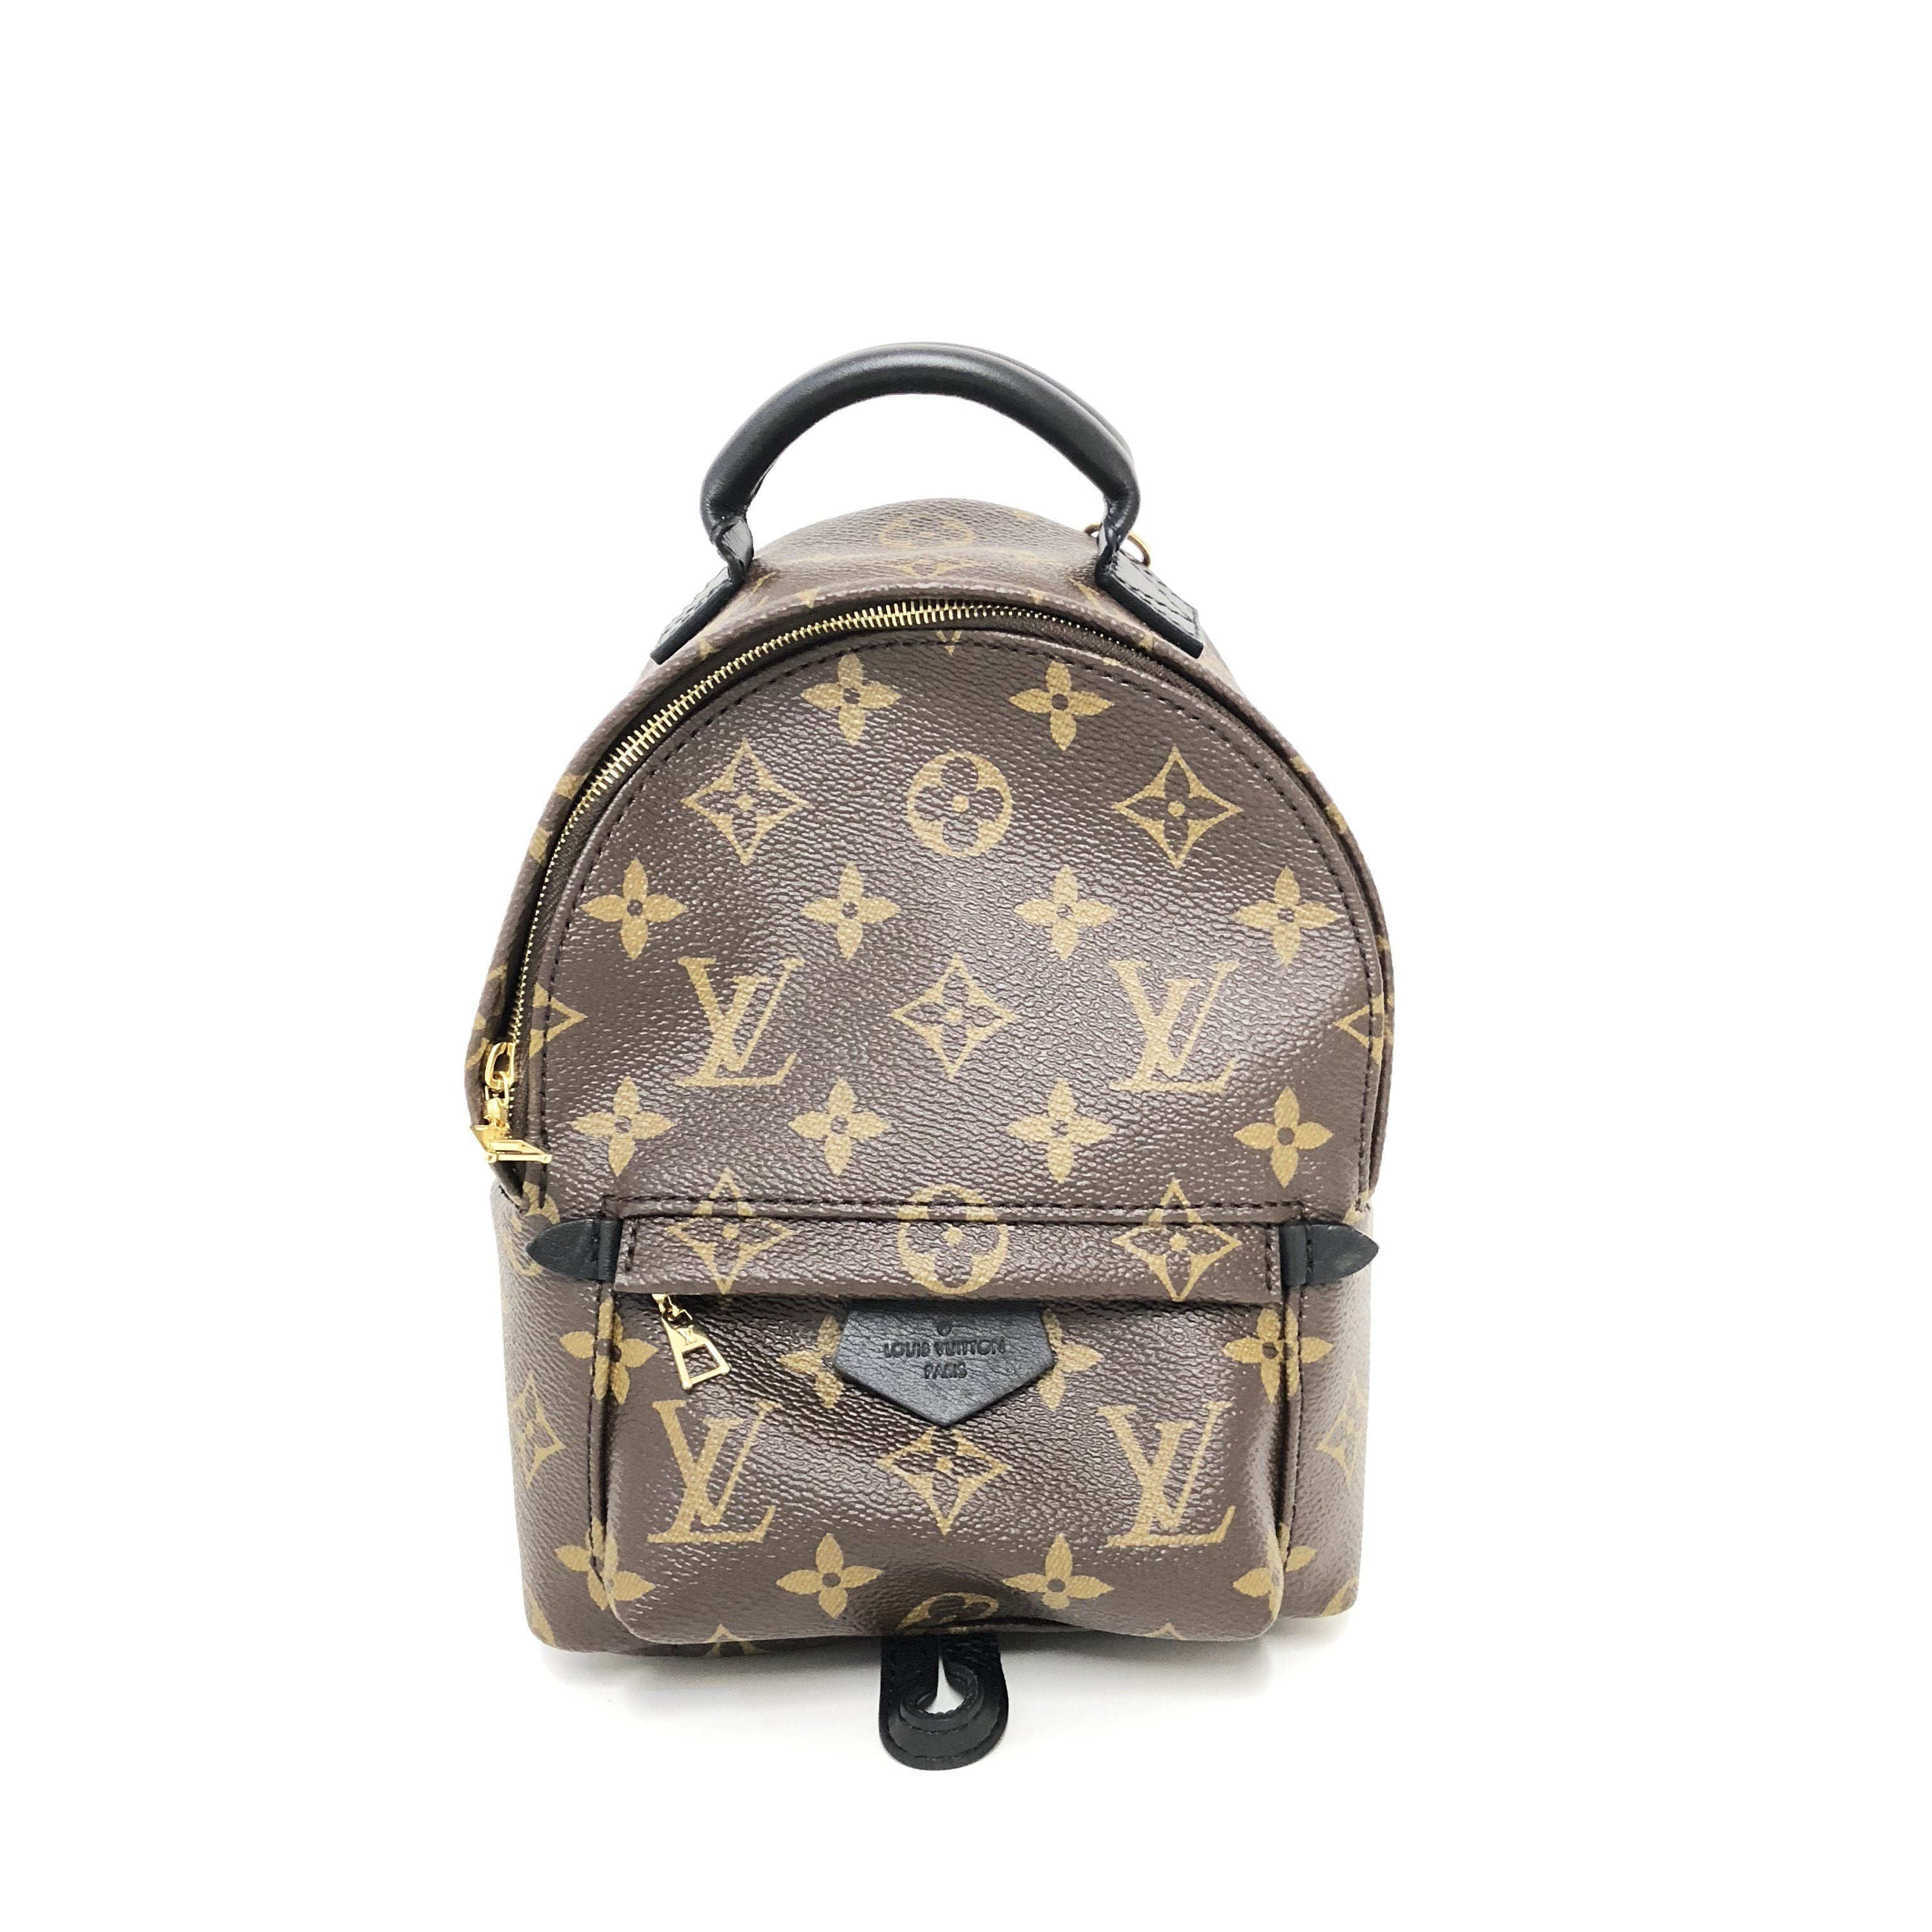 3a5a3f83cc7f Louis Vuitton Palm Springs Backpack Mini – Garderobe